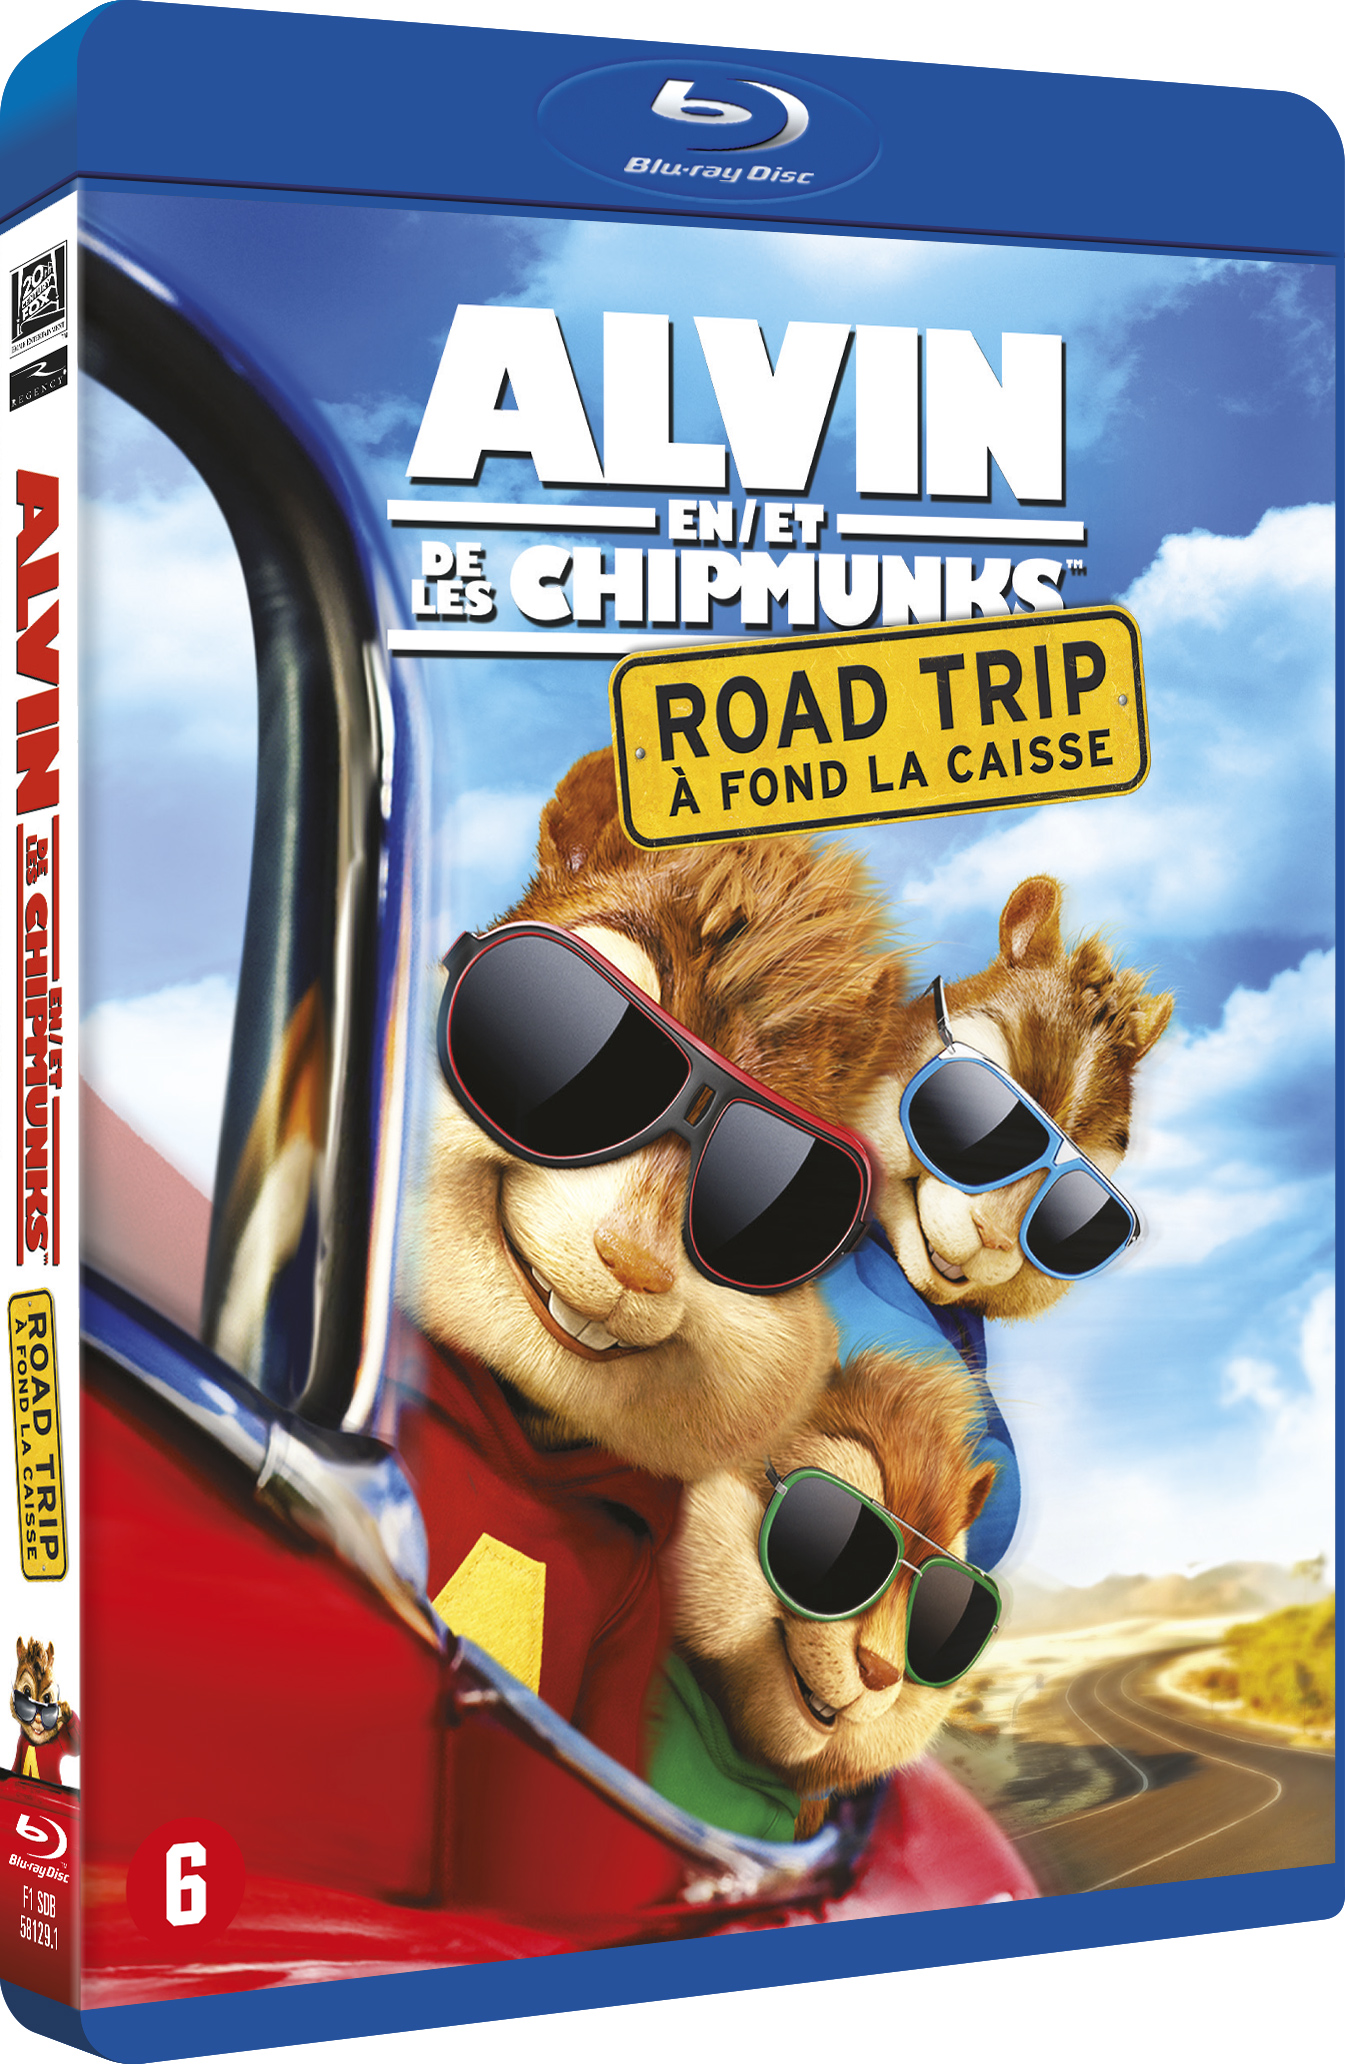 Alvin en de Chipmunks: Road Trip (Blu-ray)